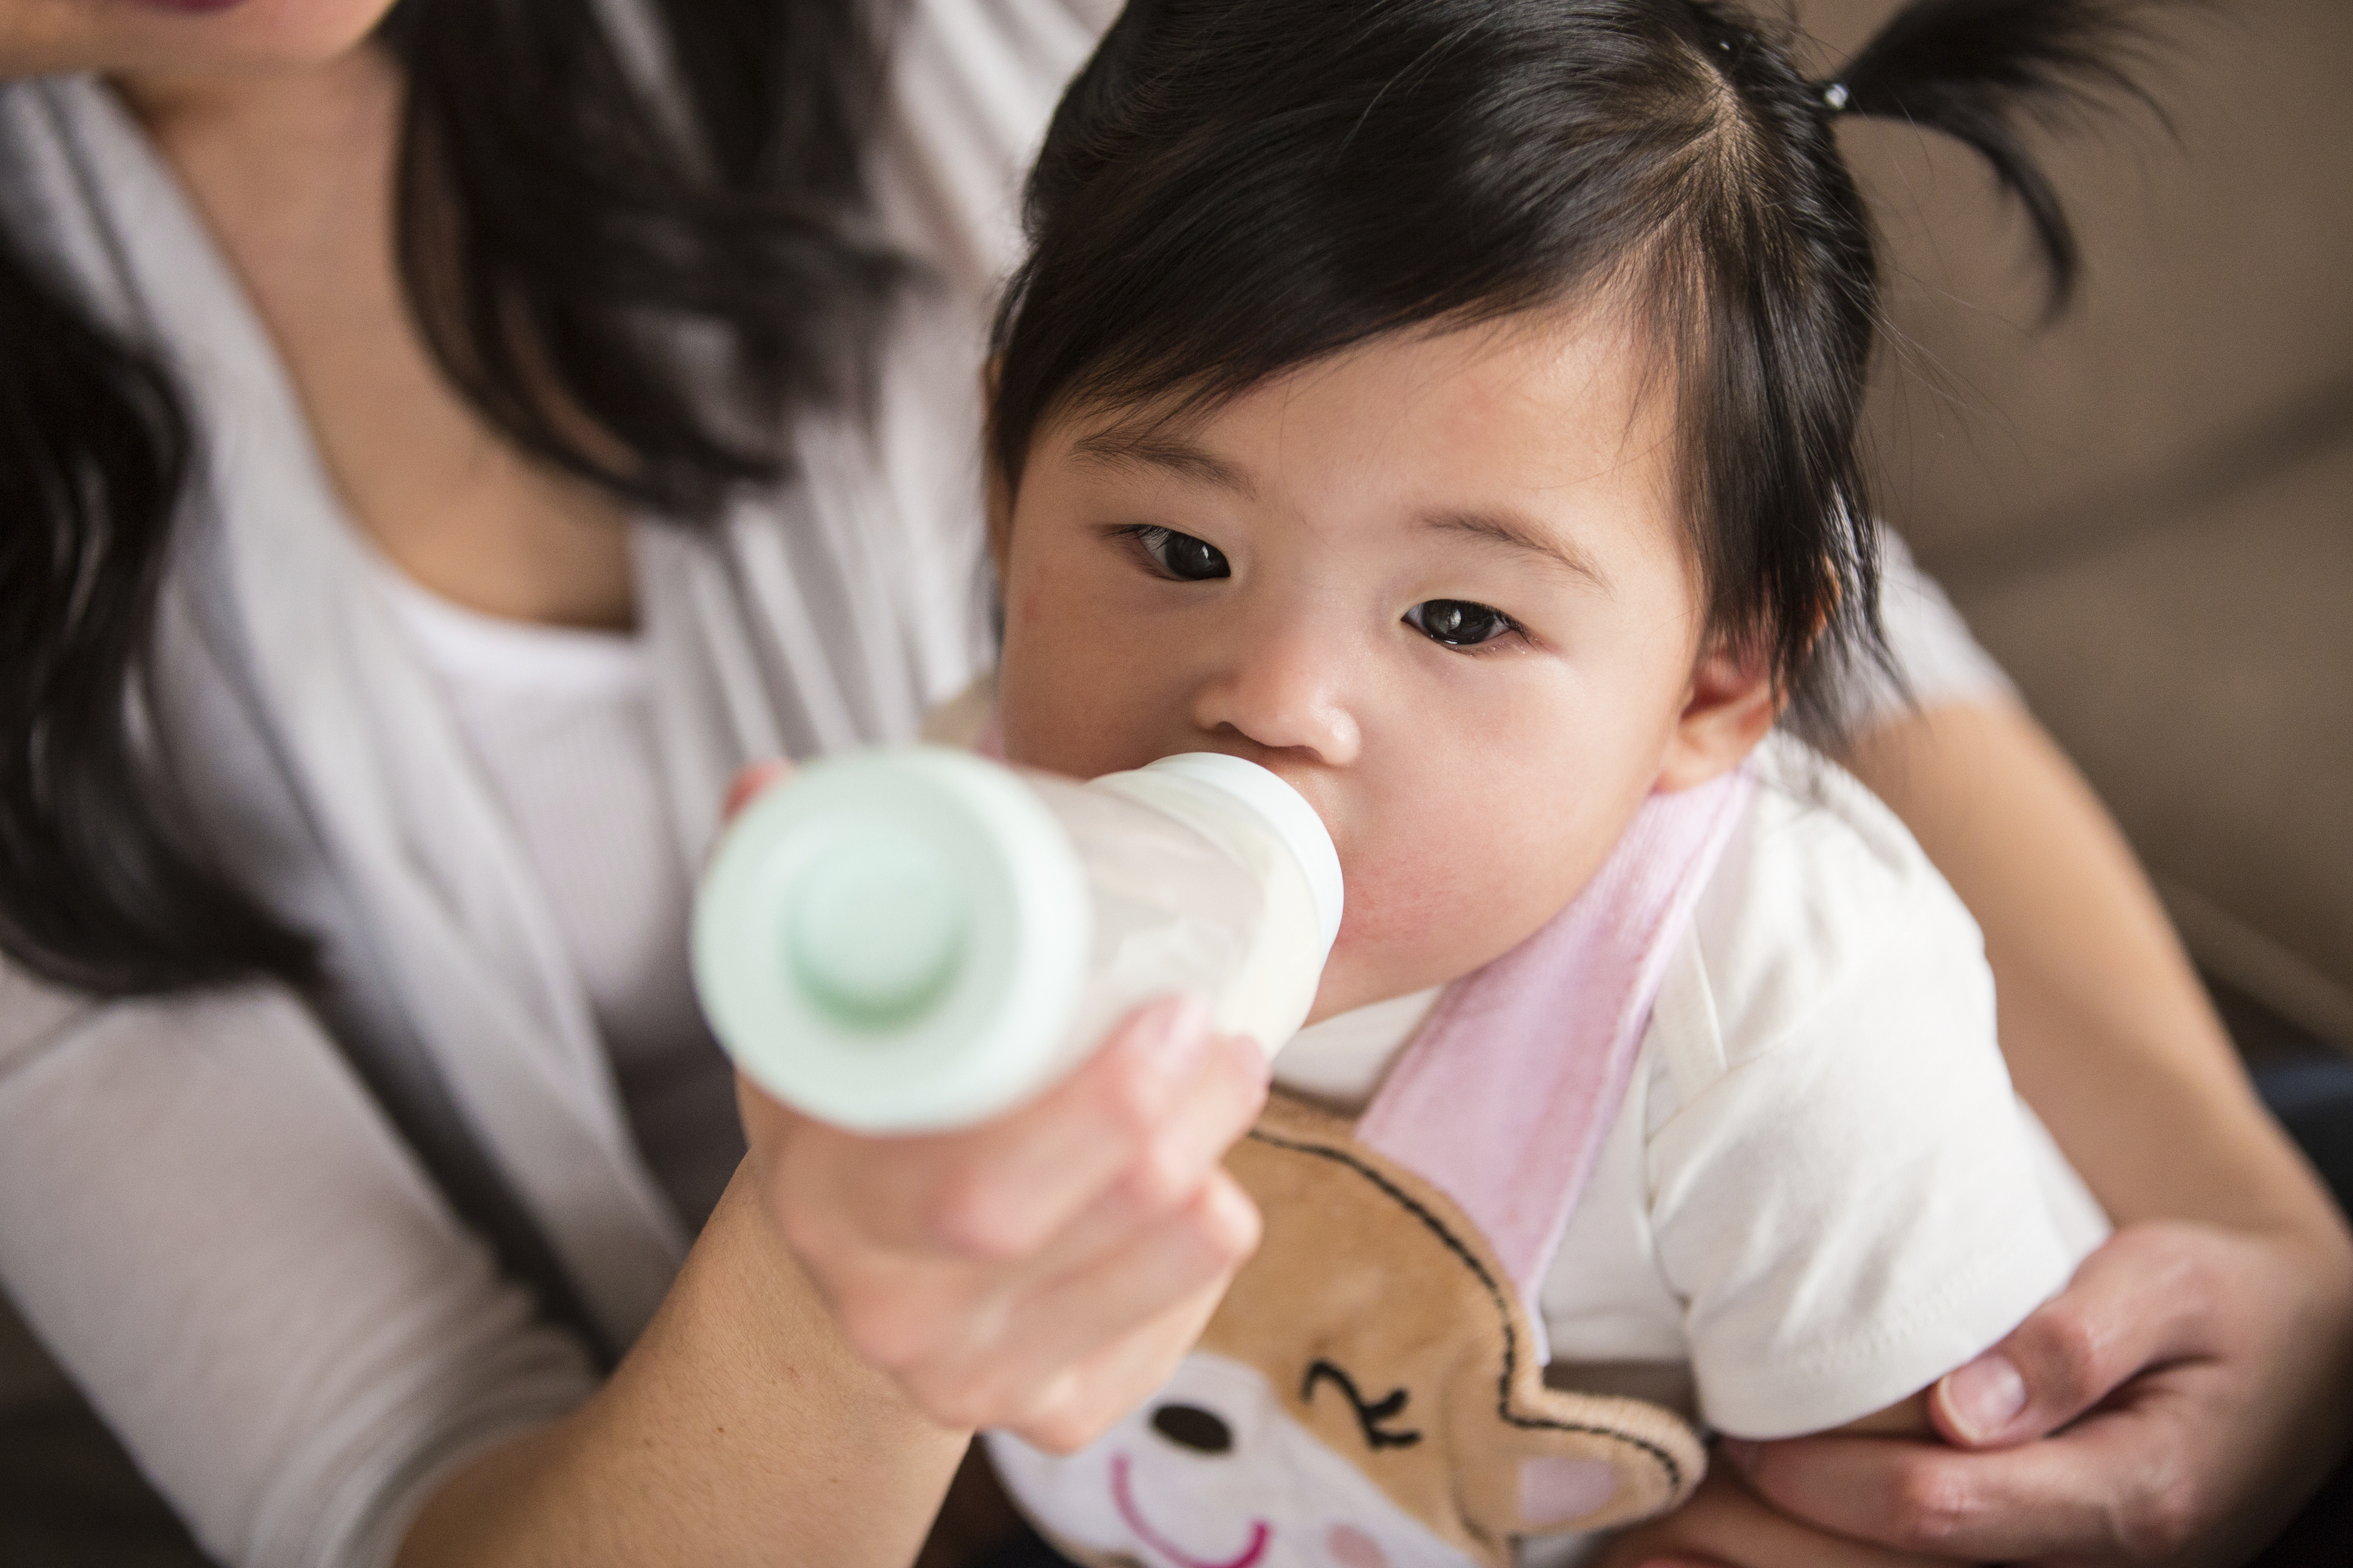 hold and feed baby after vaccine